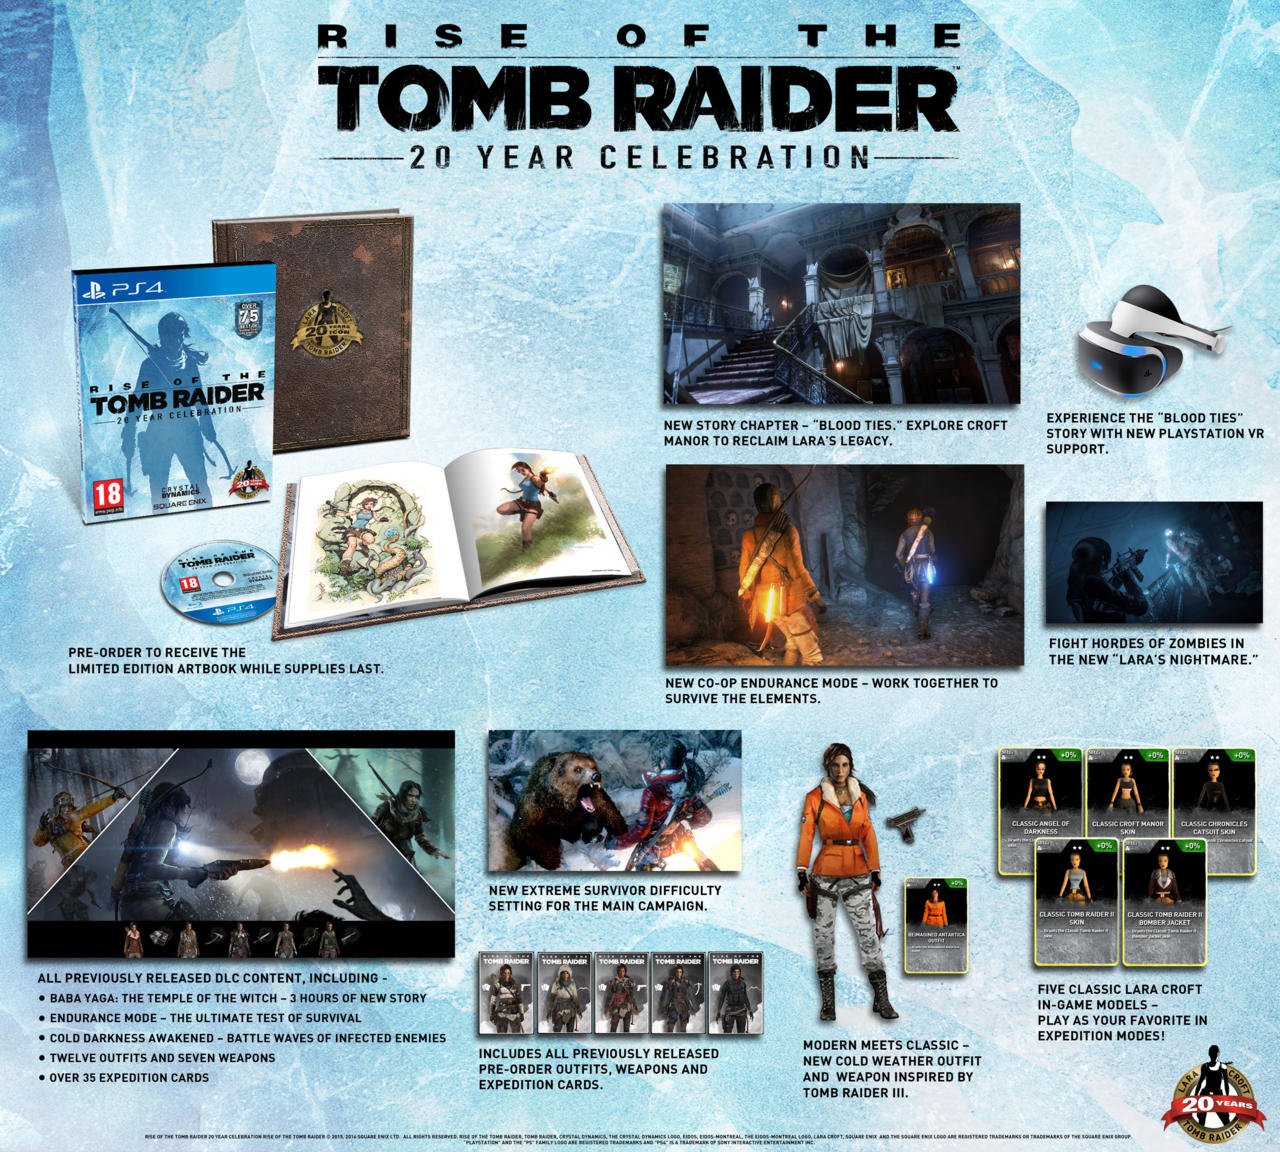 3096682-ps4_rottr_infographic_layered_pegi_1468926462